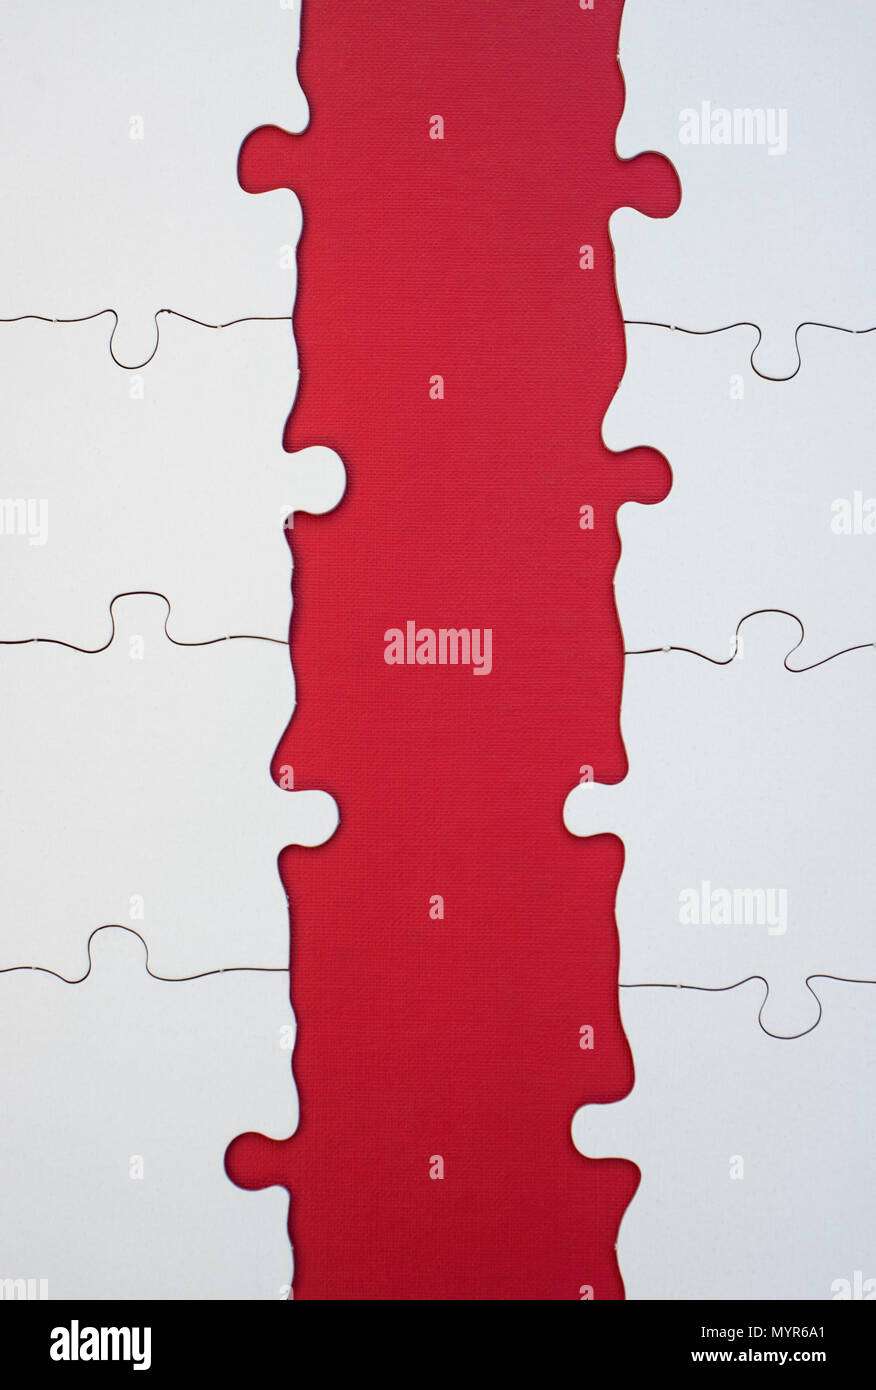 Detail of an incomplete all-white jigsaw puzzle on a red background - Stock Image